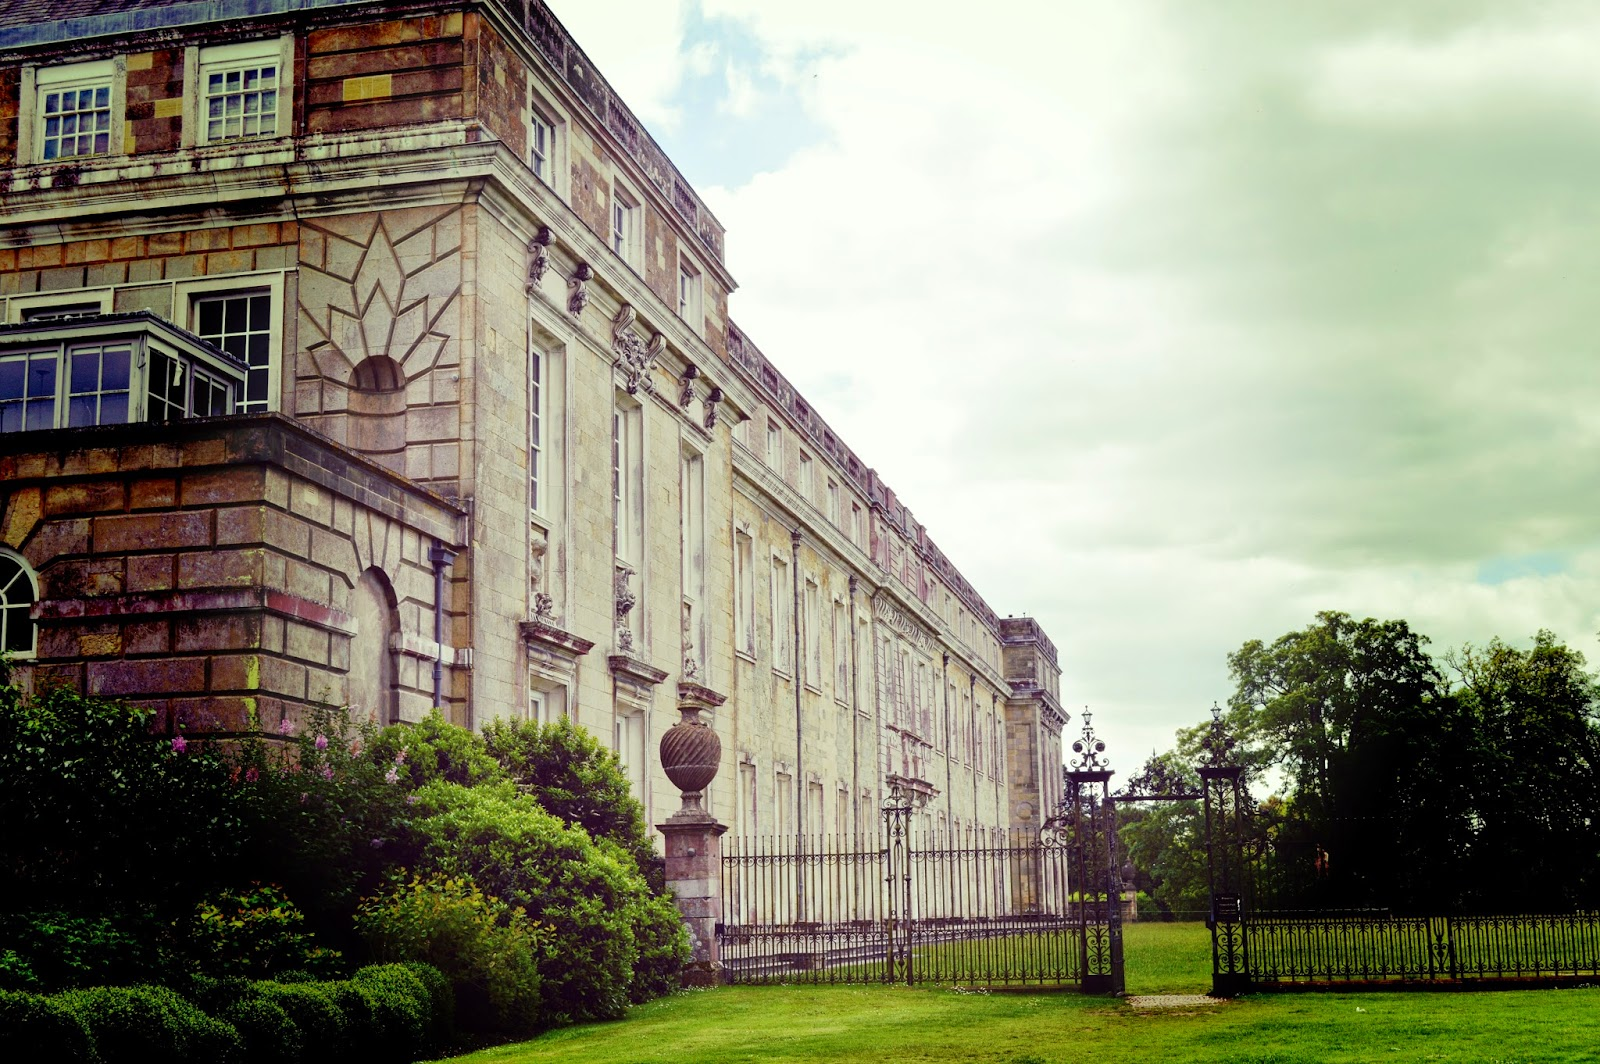 photograph, photo Petworth House and Gardens, review, visit, National Trust, west Sussex, historical home, building, 17th century, property, Percy family, England,